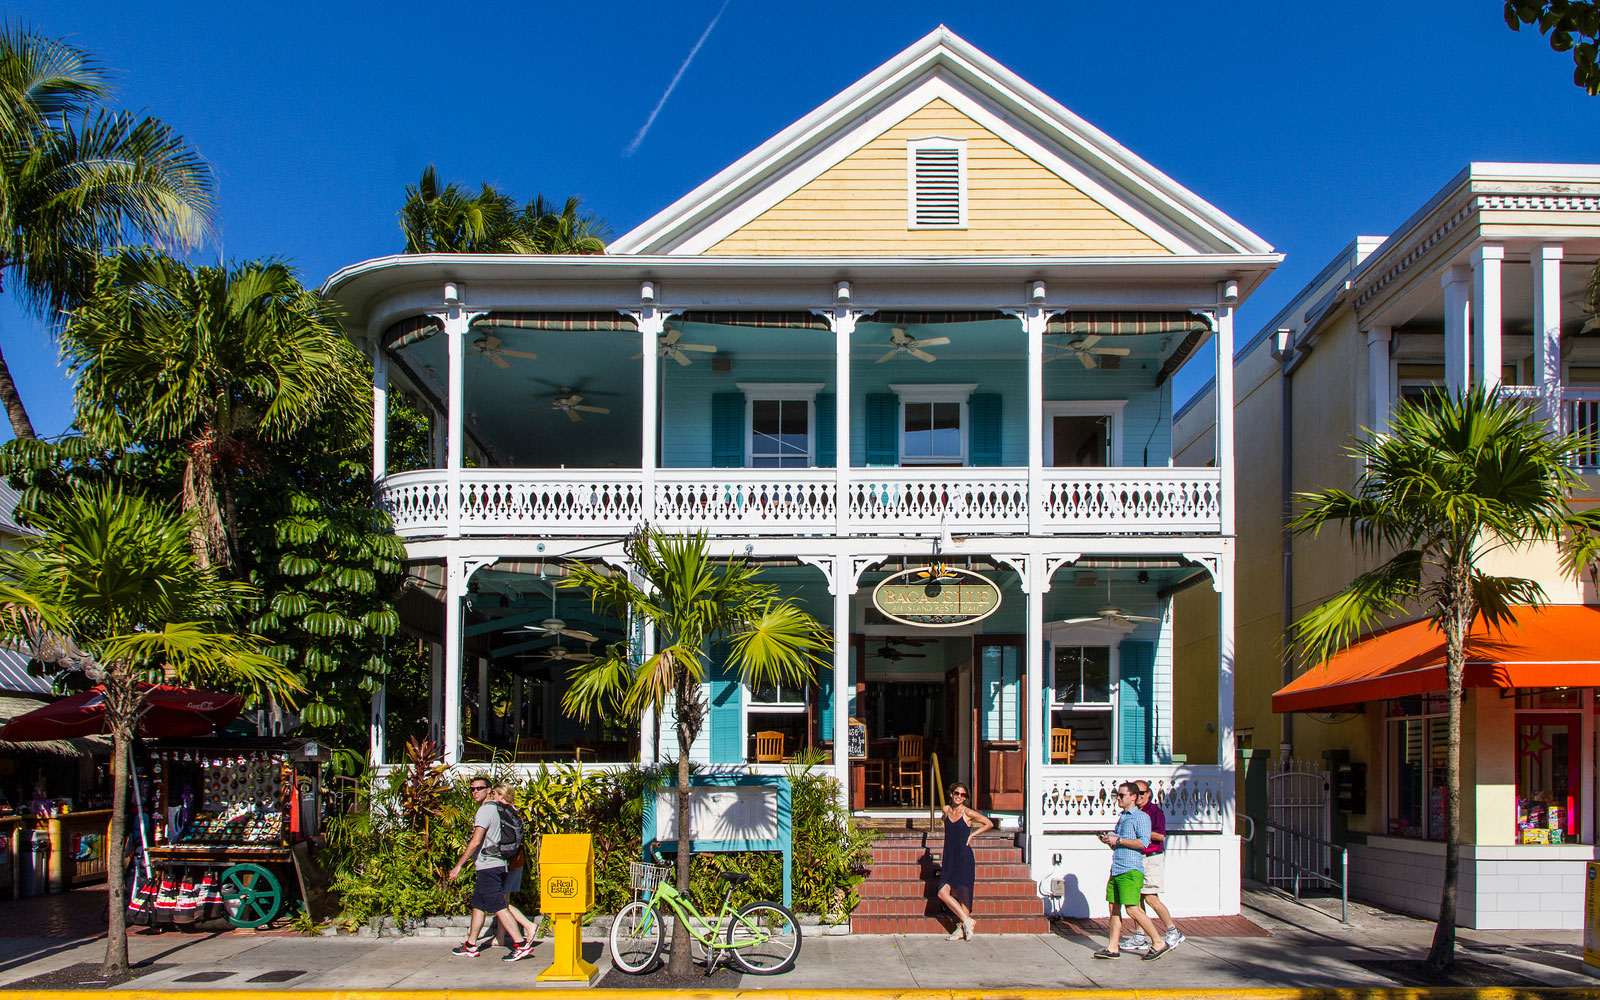 30. Key West, Florida